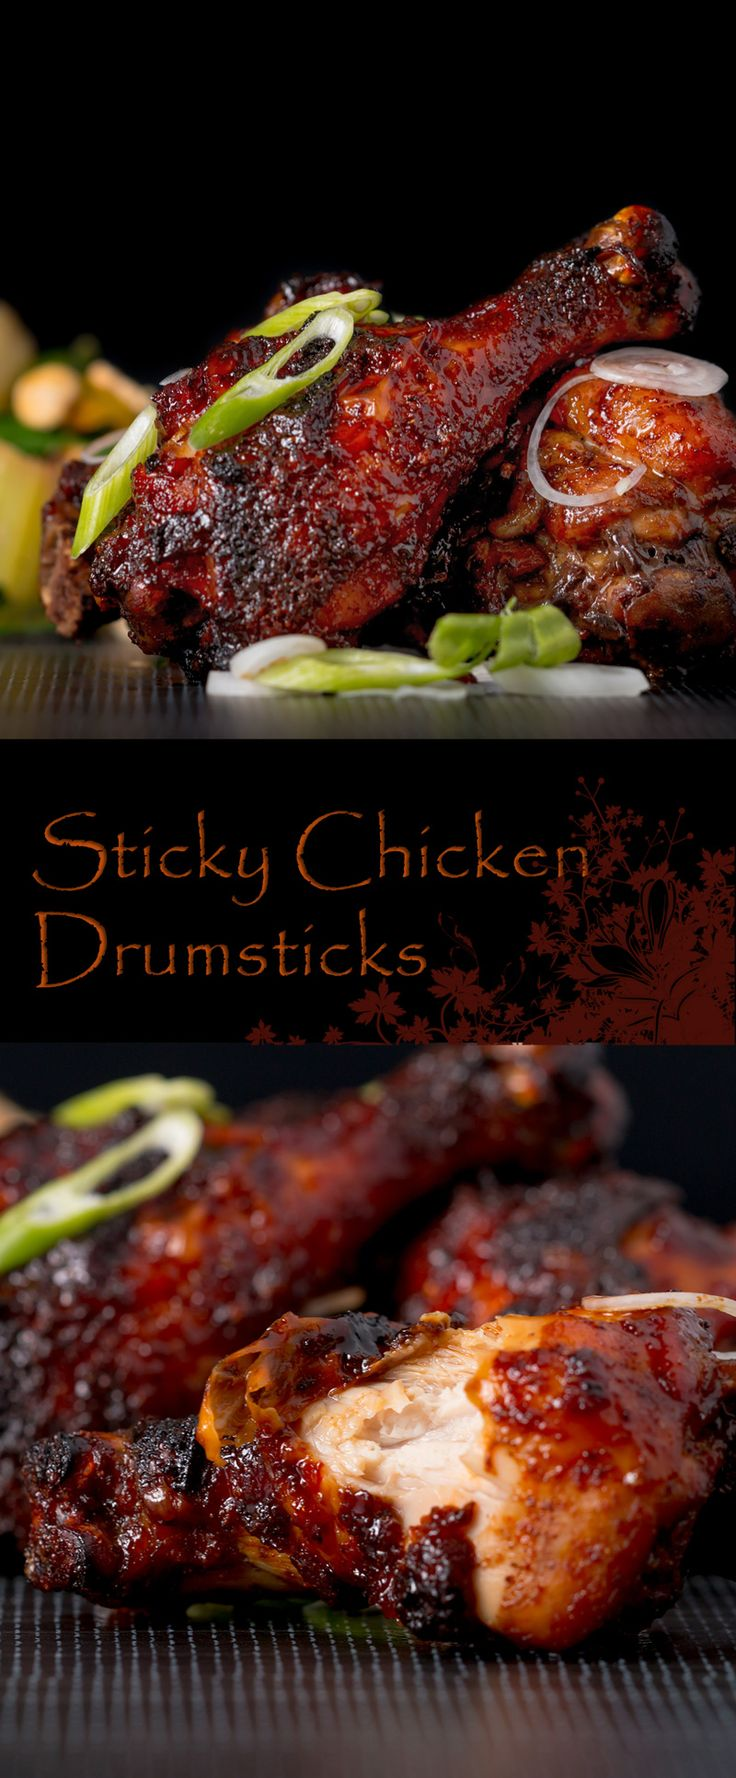 Sticky Chicken Drumsticks Recipe: Finger Licking Sticky Chicken Drumsticks coated with a rich and dark glaze heavy with chili, perfect from the oven but would work equally well on a BBQ!